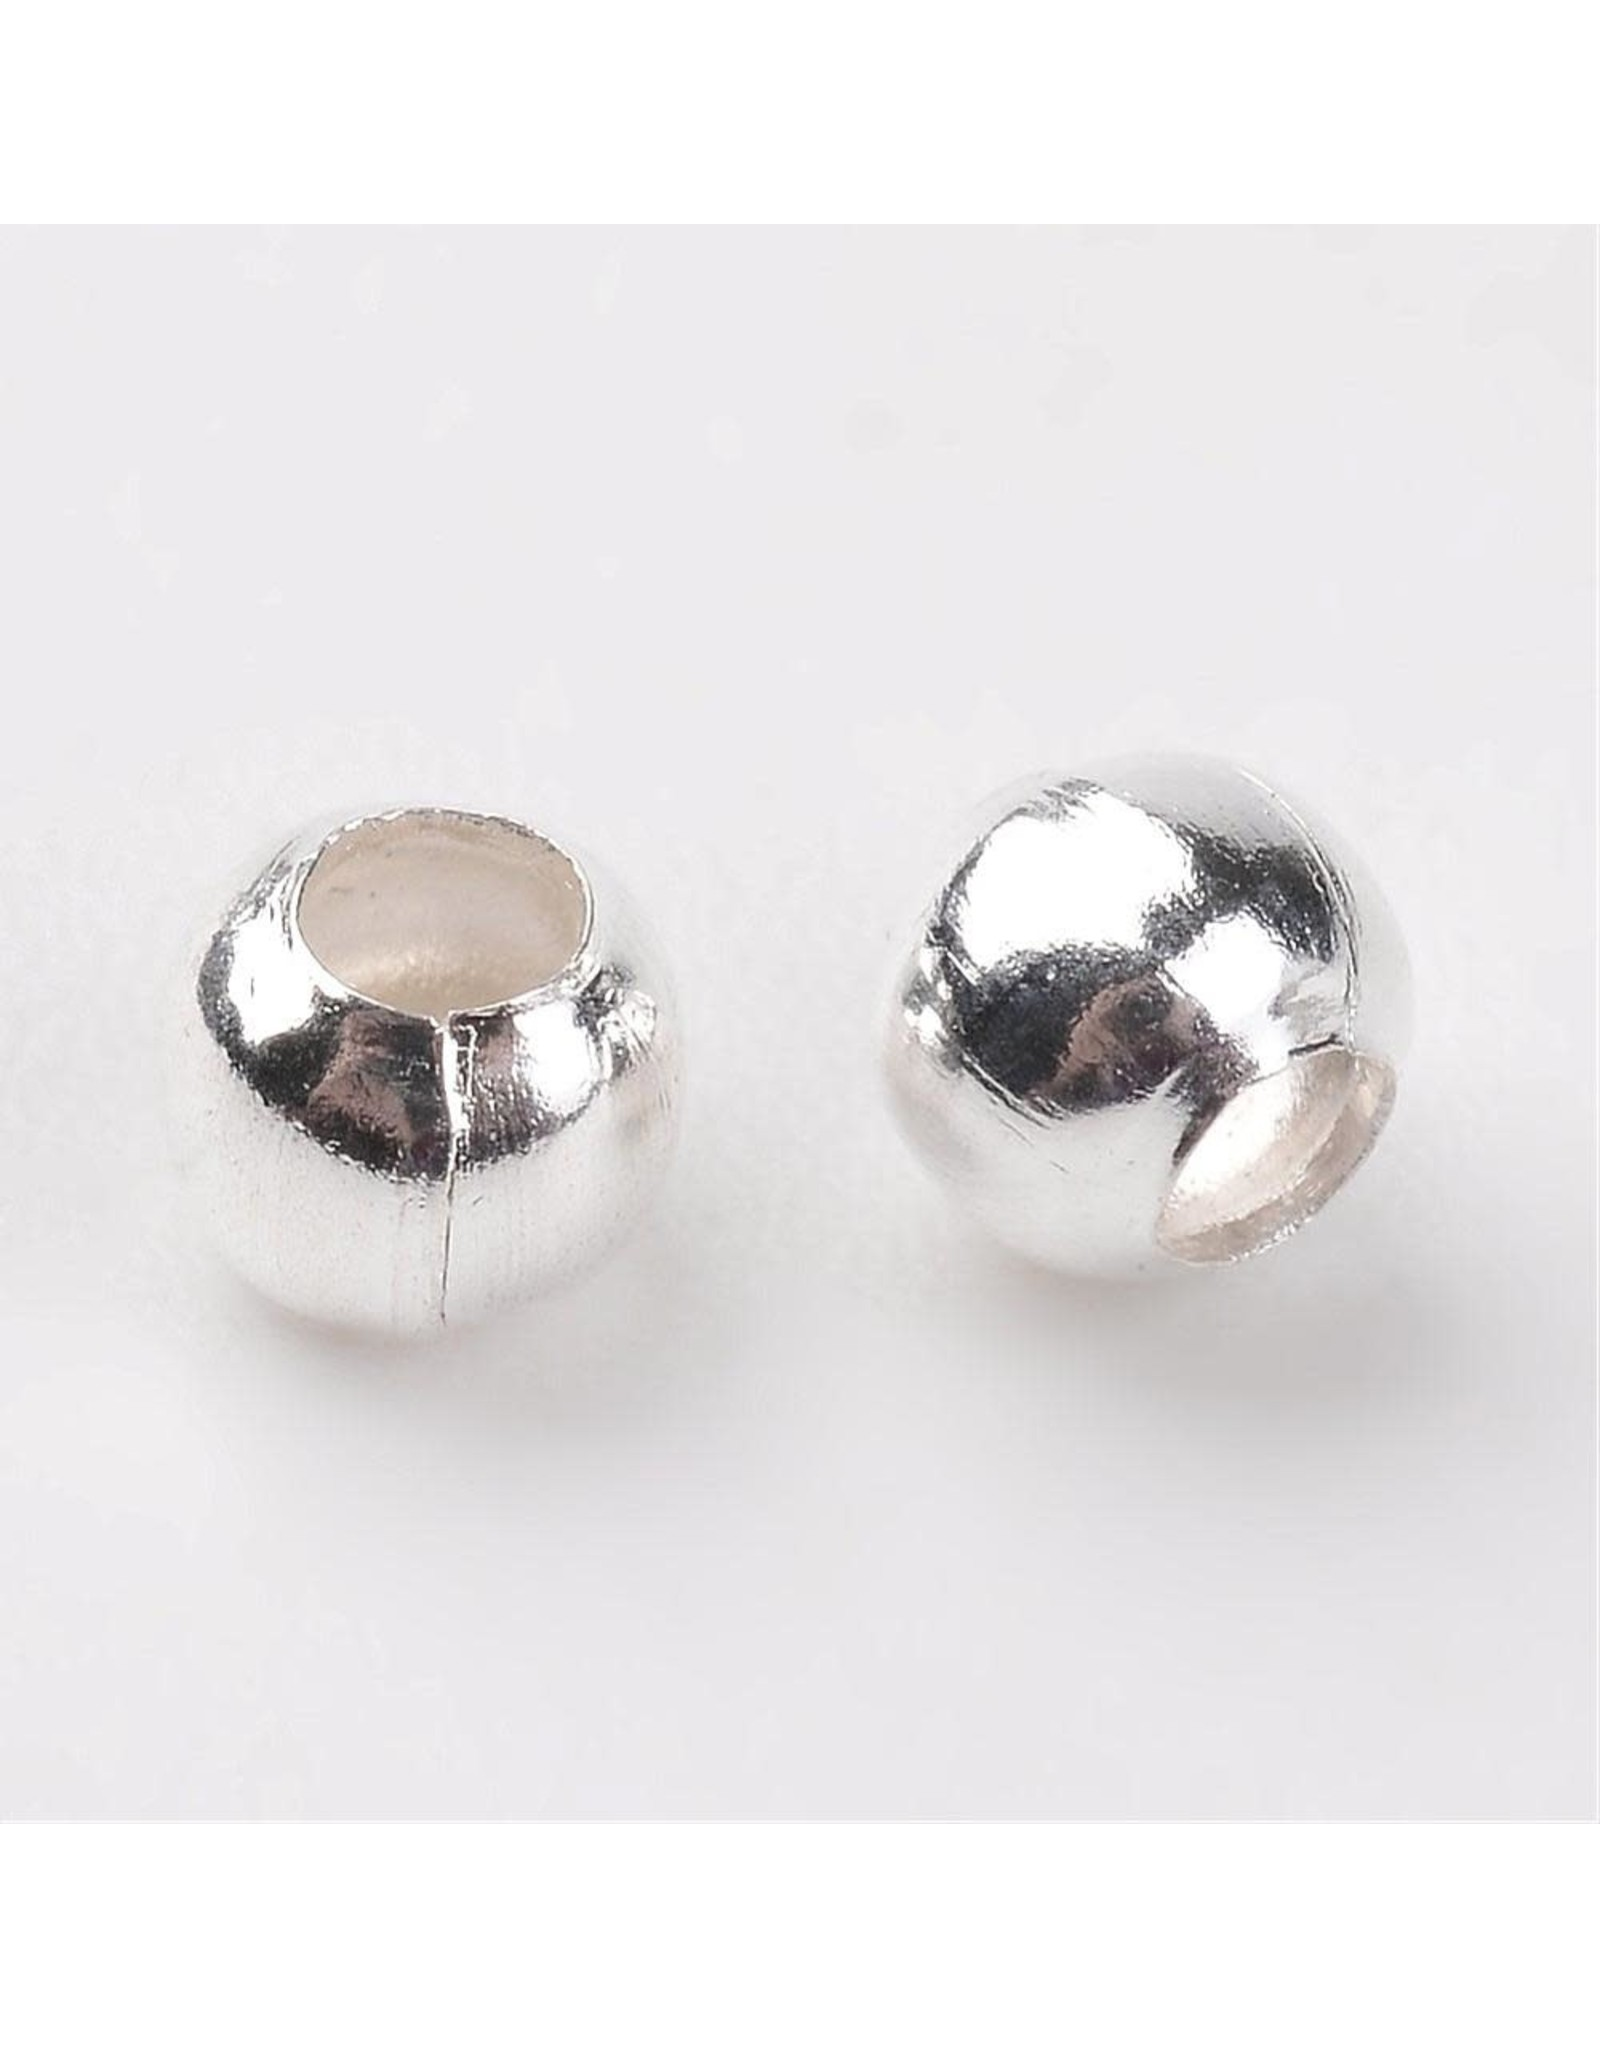 Spacer Bead Round 3mm  Silver  x100